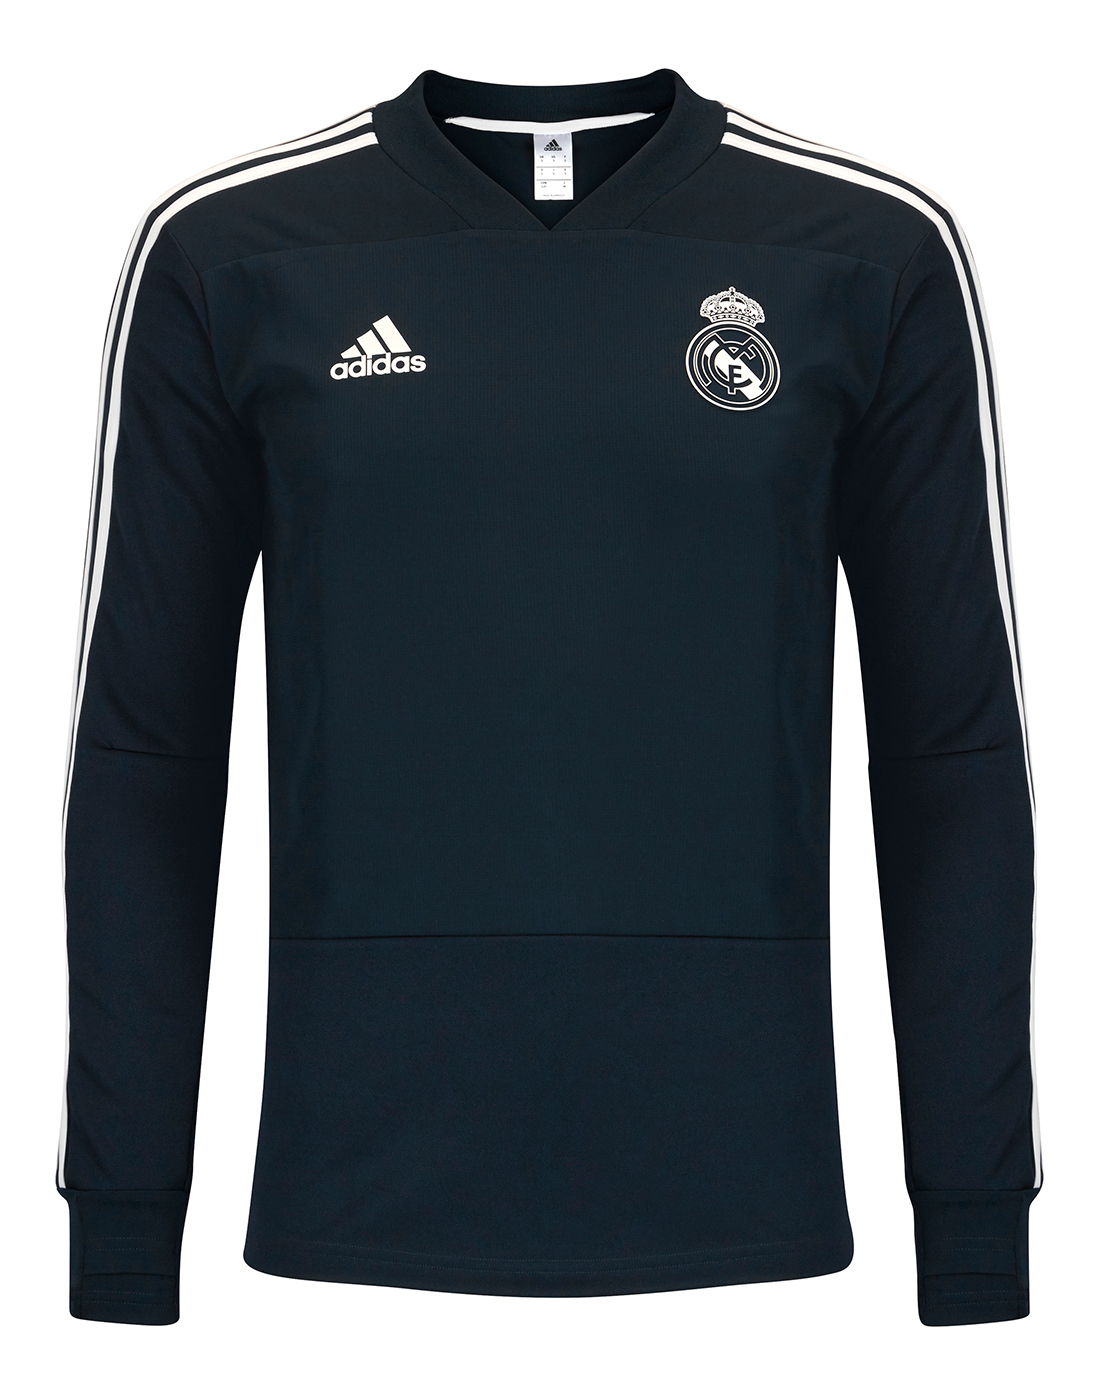 6dbcbbbb527 adidas Adult Real Madrid Training Top   Life Style Sports